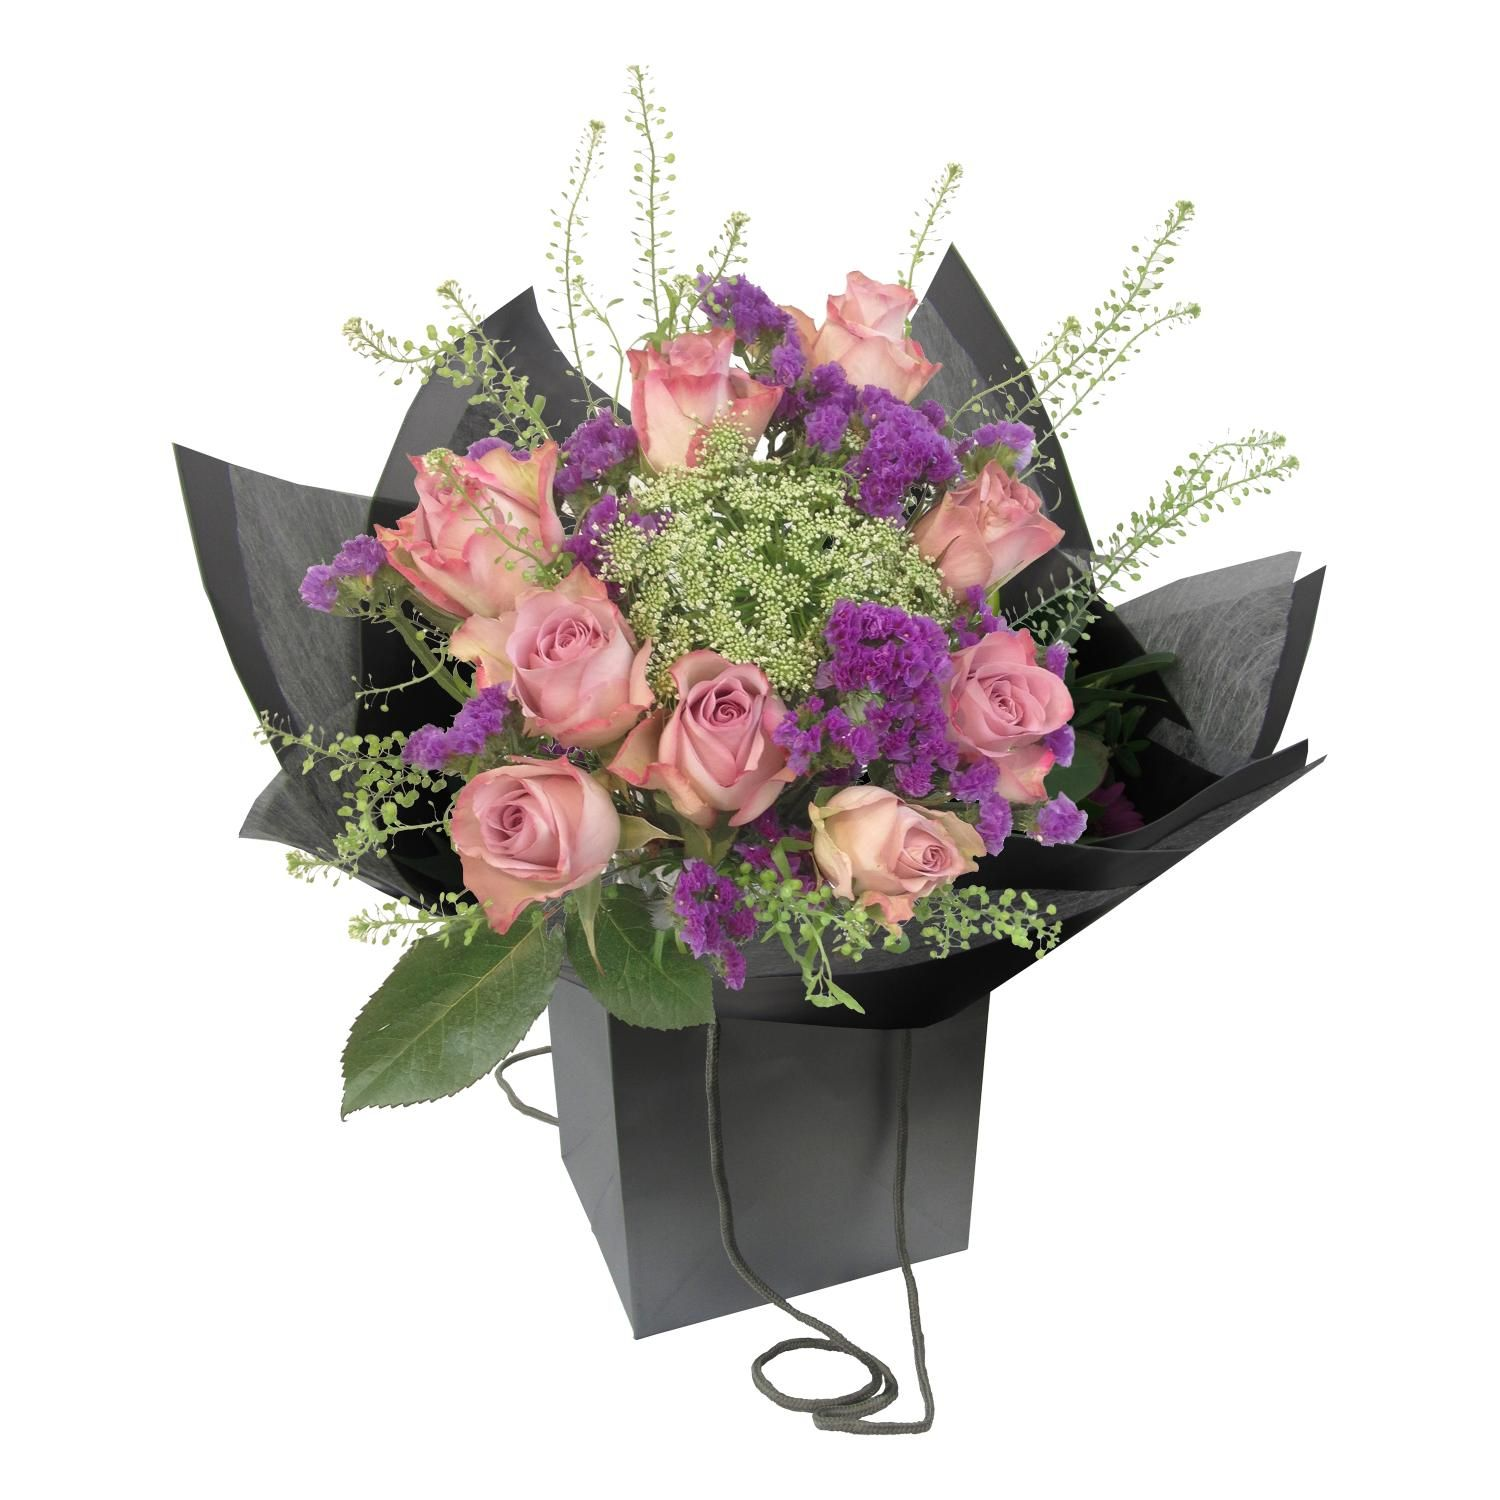 £30.00 - Monet Bouquet. The pastel shades of lilacs, pinks and greens in #Monet's 'Water-Lily Pond' are recreated in our bouquet by Memory Lane Roses, purple Statice, pale pink Veronica and Thlaspi. A touch of light is given by the Ammi's tiny flowerlets, making it a perfect and delicate gift for #ValentinesDay http://bit.ly/1PRSRZc